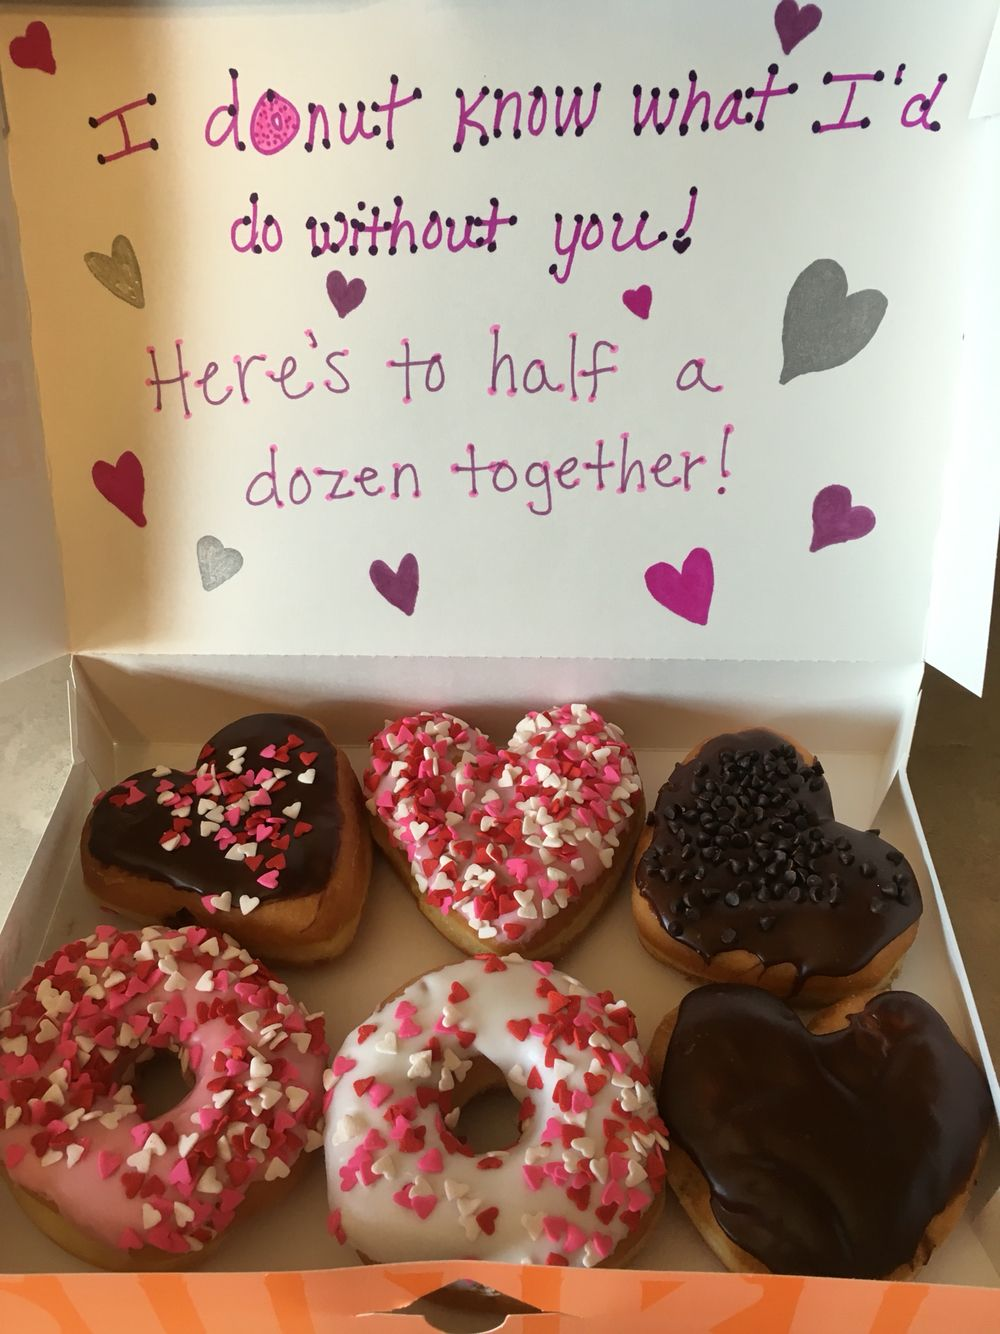 6th wedding anniversary gift 6 month anniversary donut anniversary gift could do the same for a dozen for a year